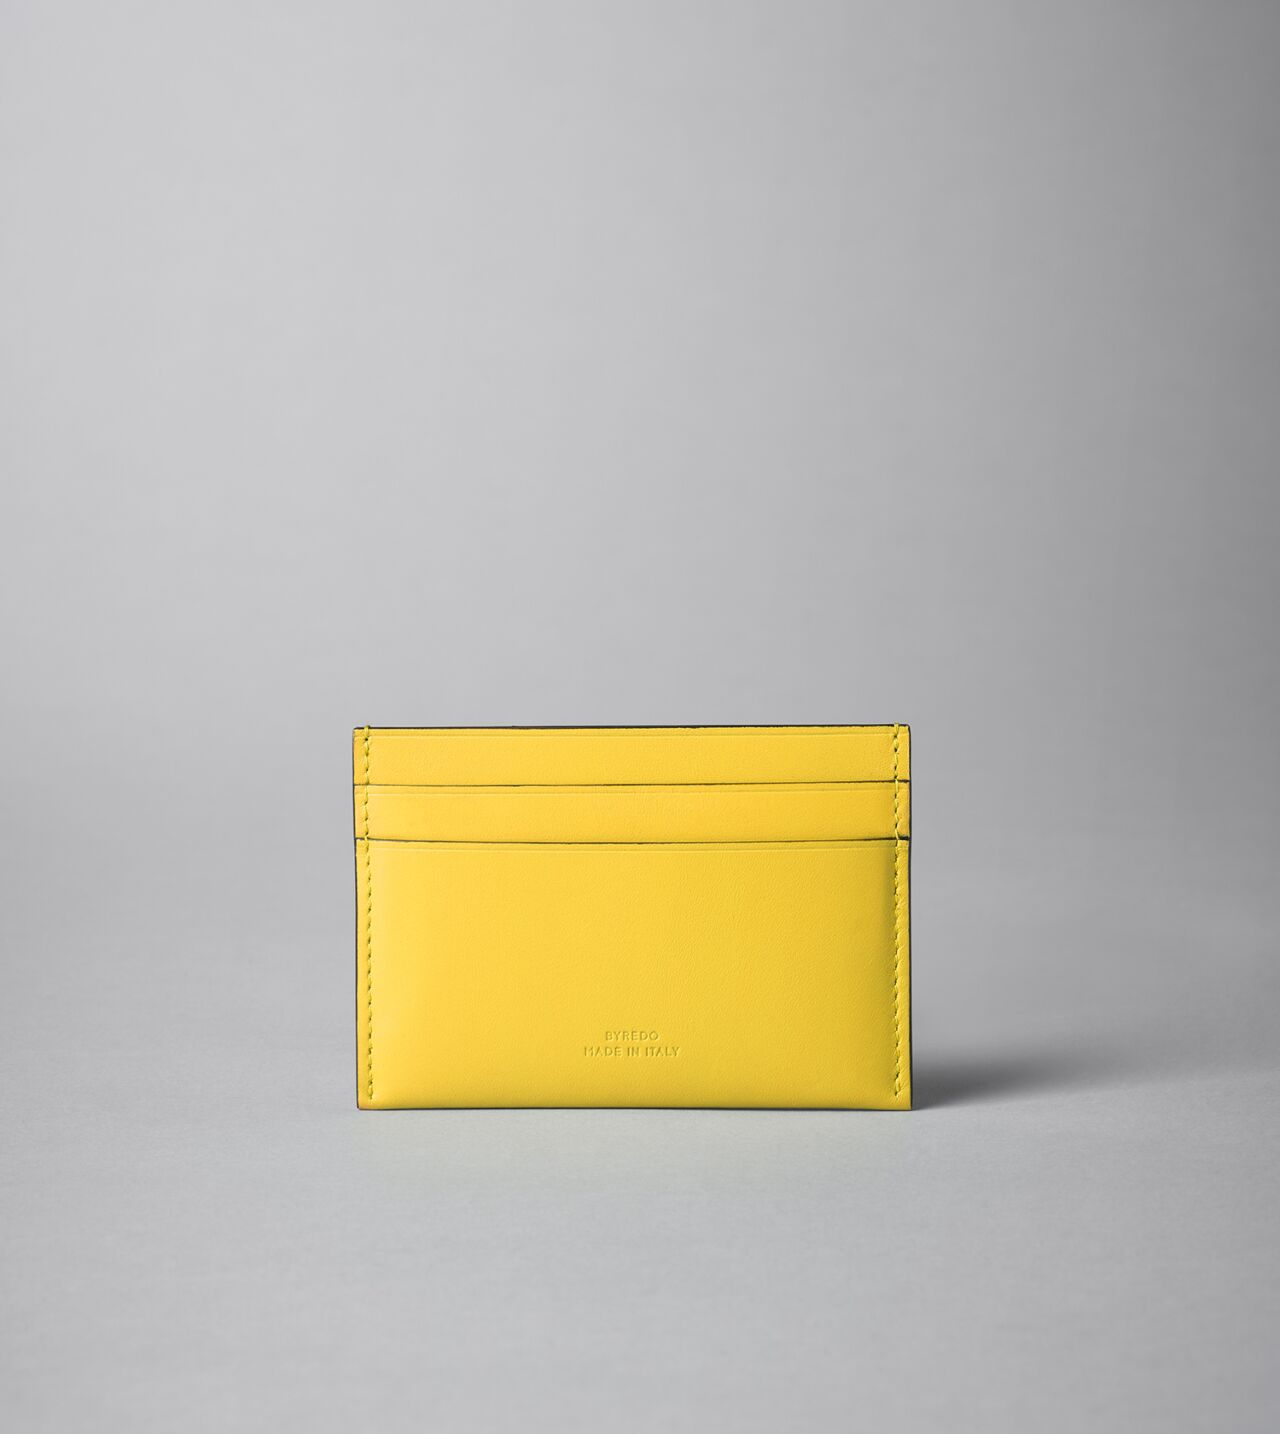 Picture of Byredo Credit card holder in Yellow leather